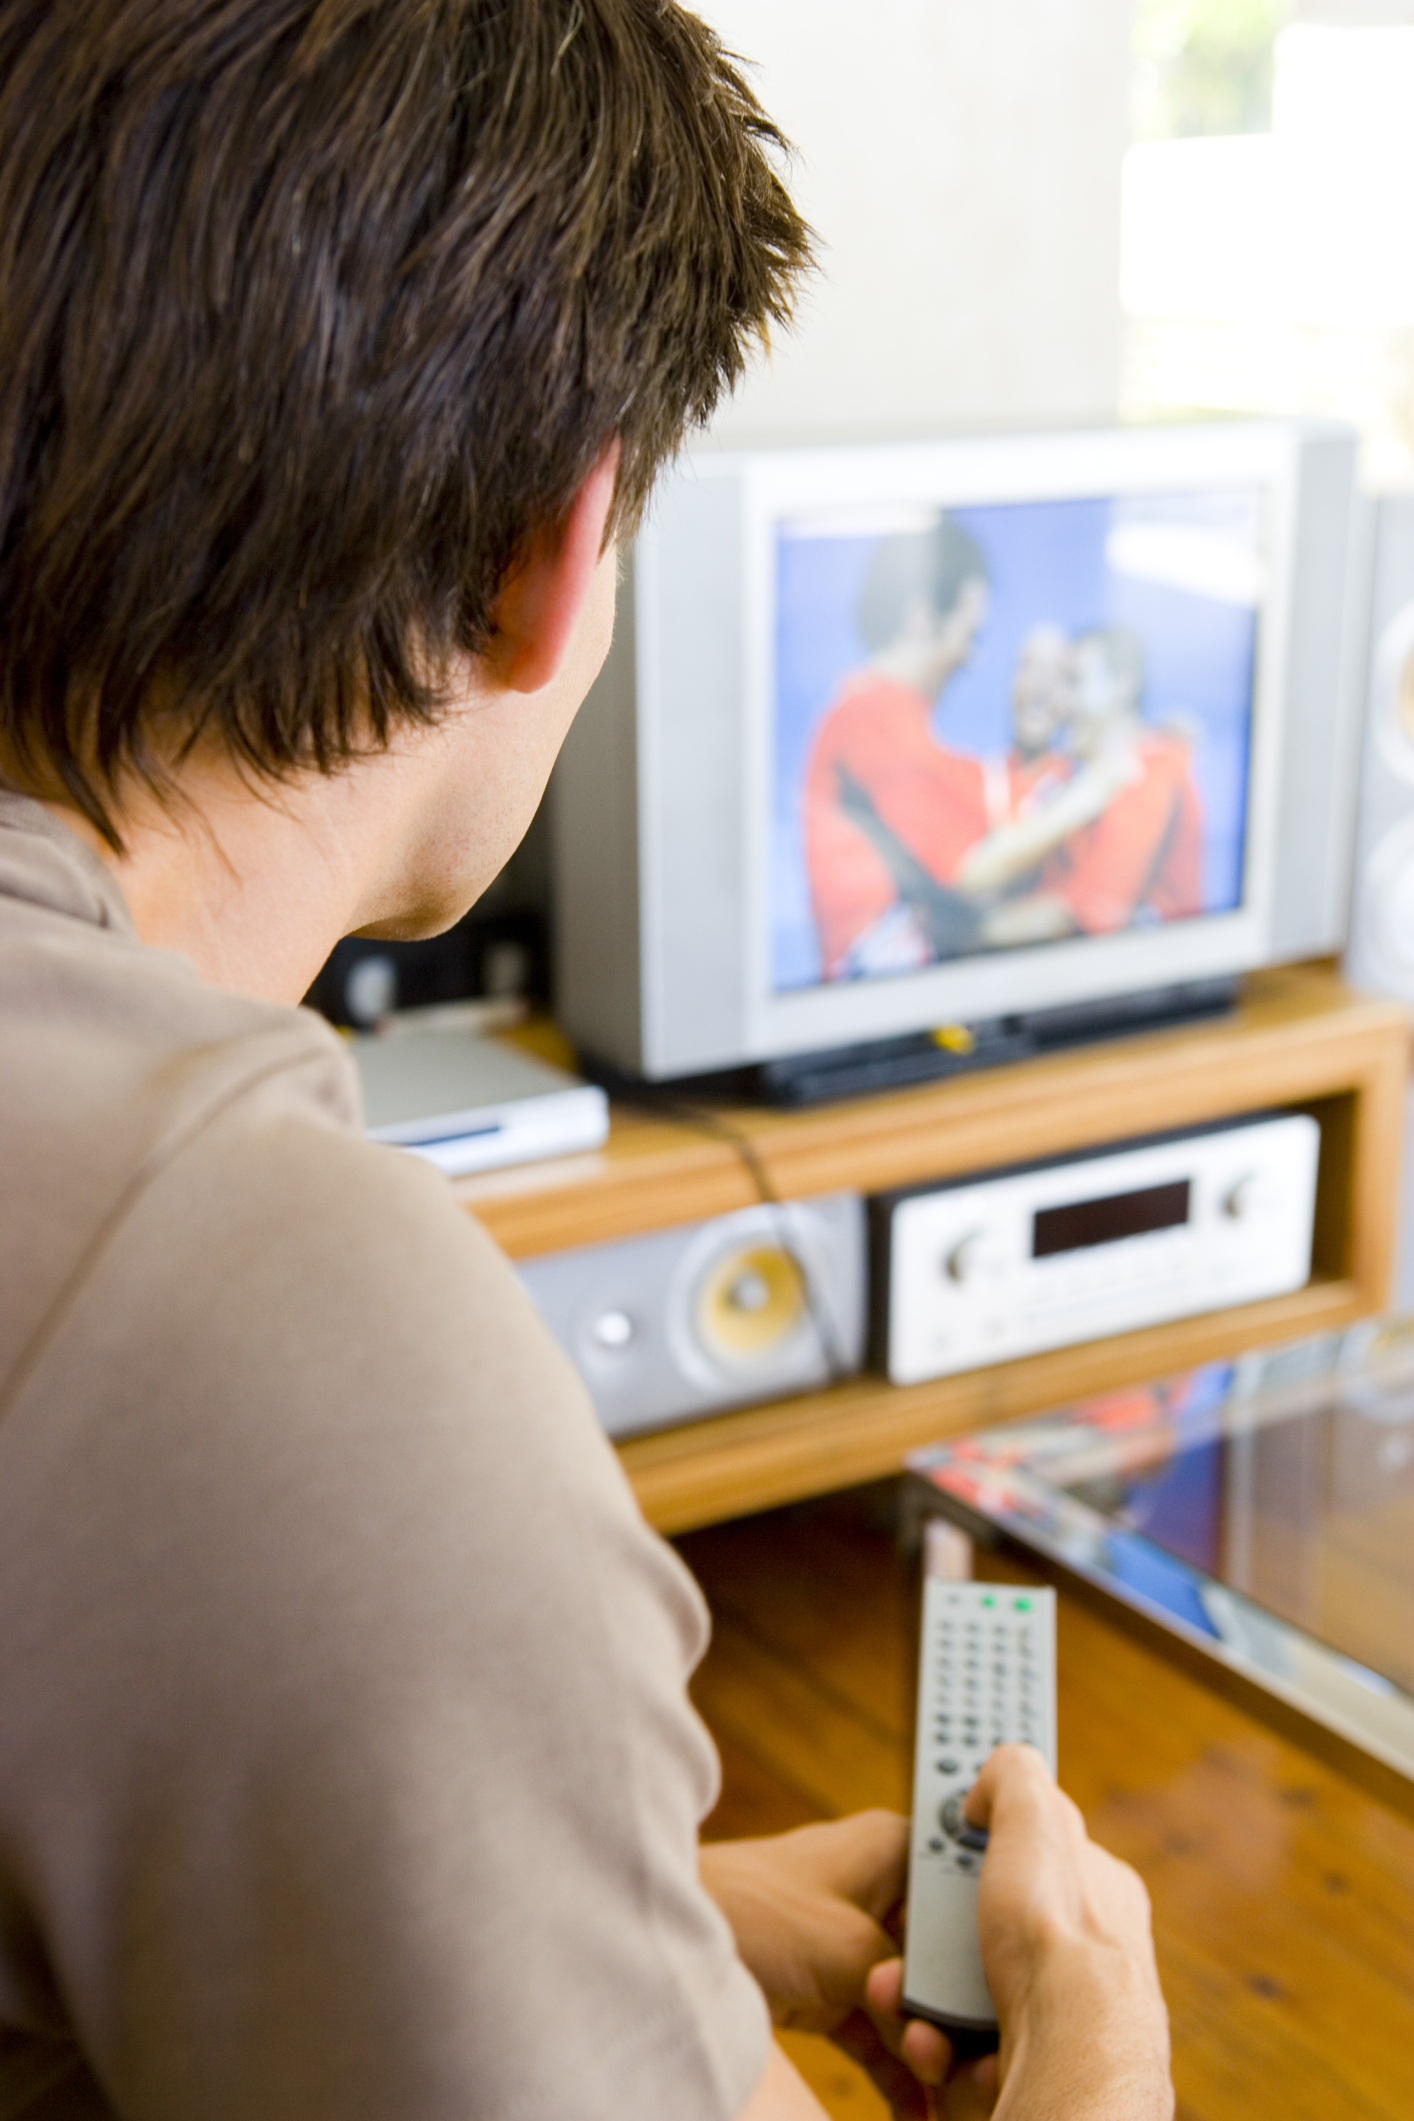 How to Get Netflix on a Non-Smart TV